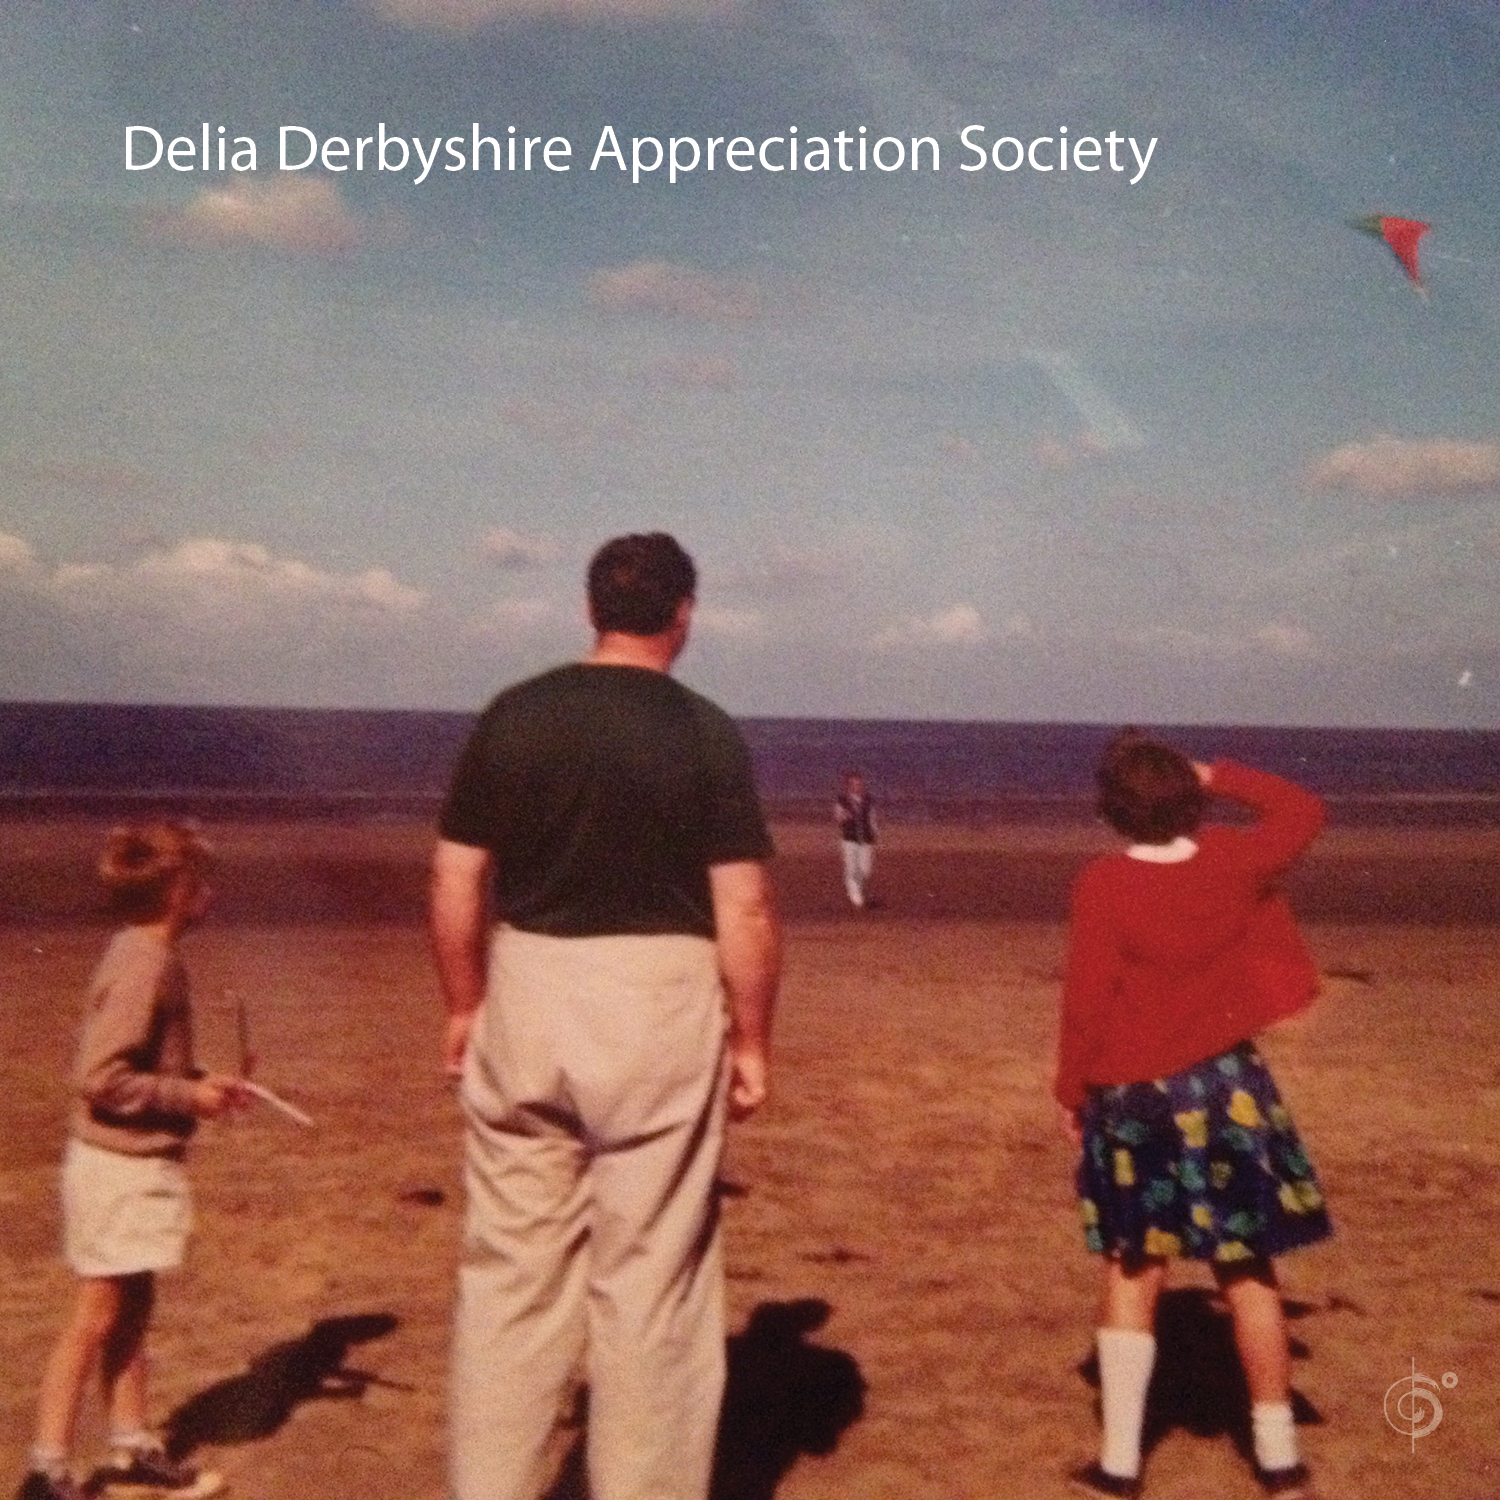 Delia Derbyshire Appreciation Society